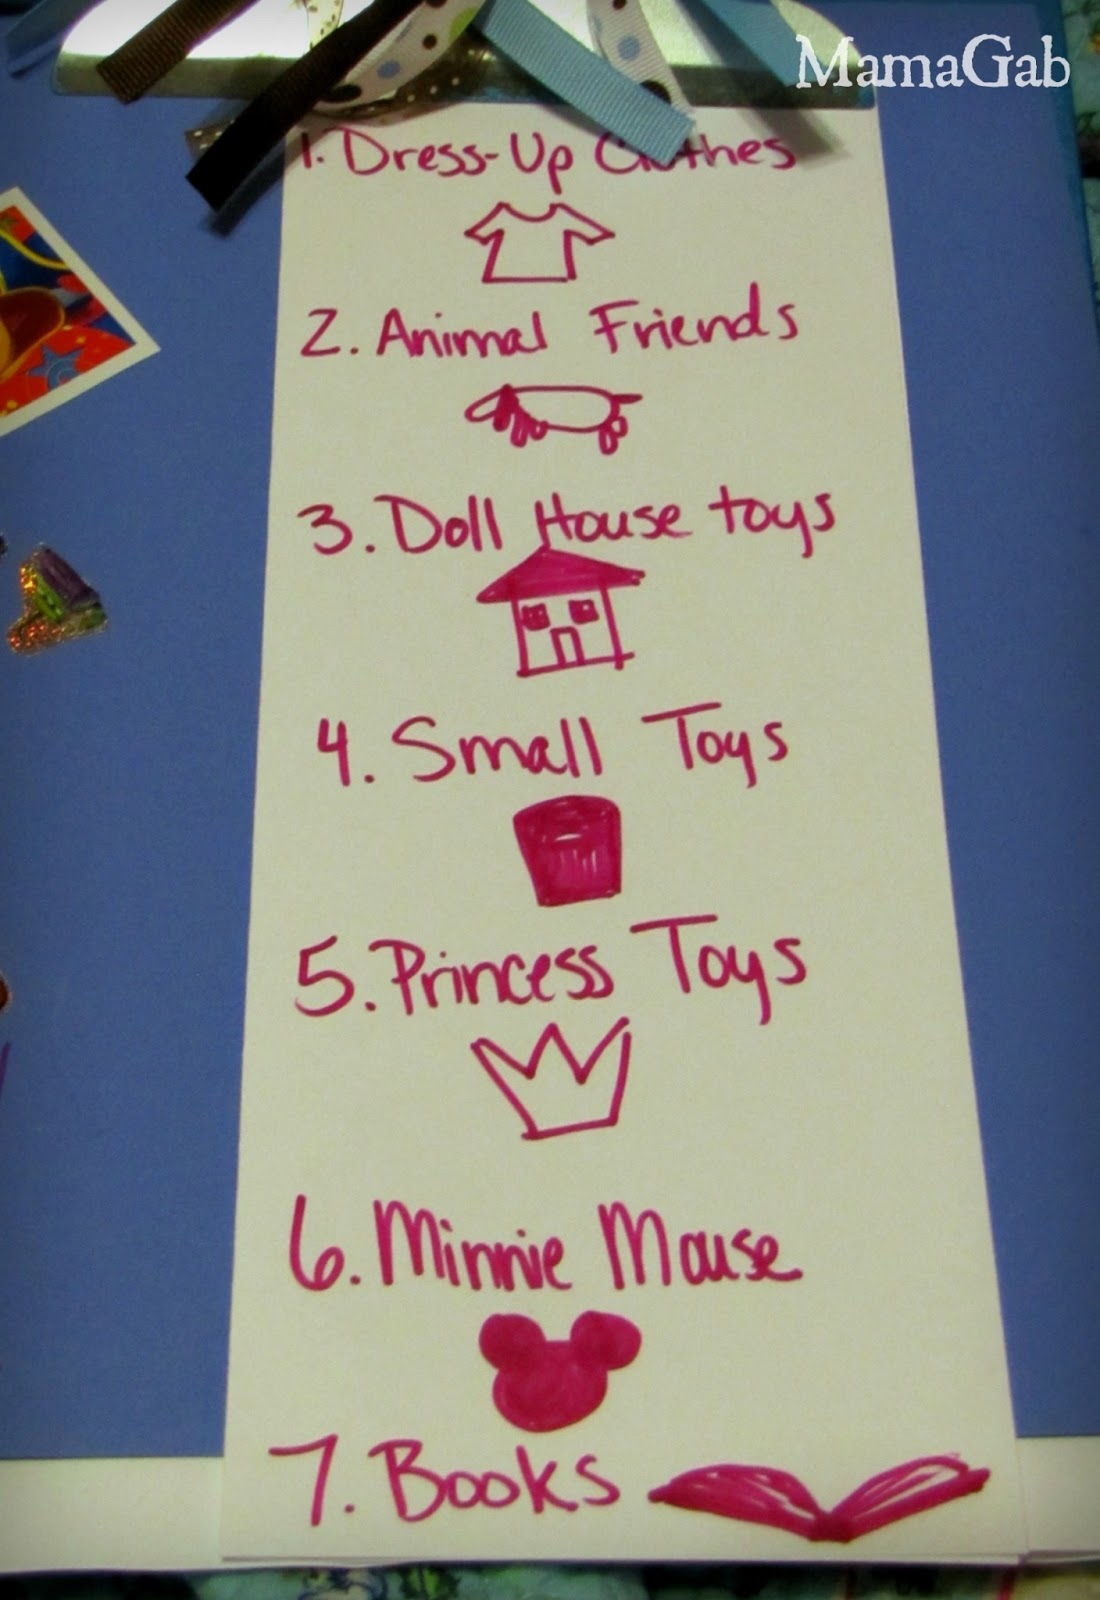 A Fun Way To Get Your Preschooler To Clean Their Room